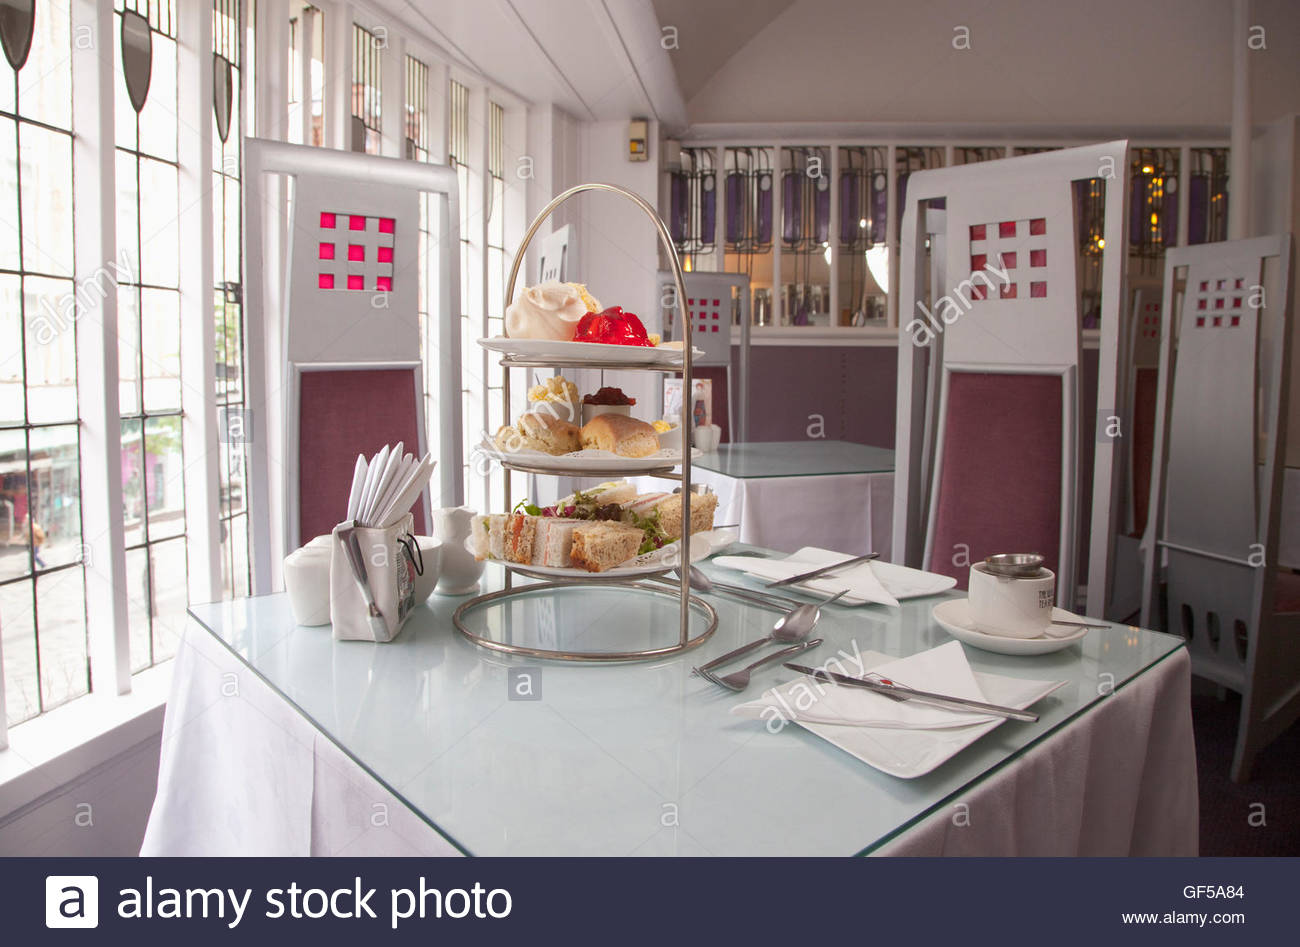 Afternoon tea in the Willow Tearoom designed by celebrated Glasgow architect, Charles Rennie Mackintosh, Glasgow - Stock Image